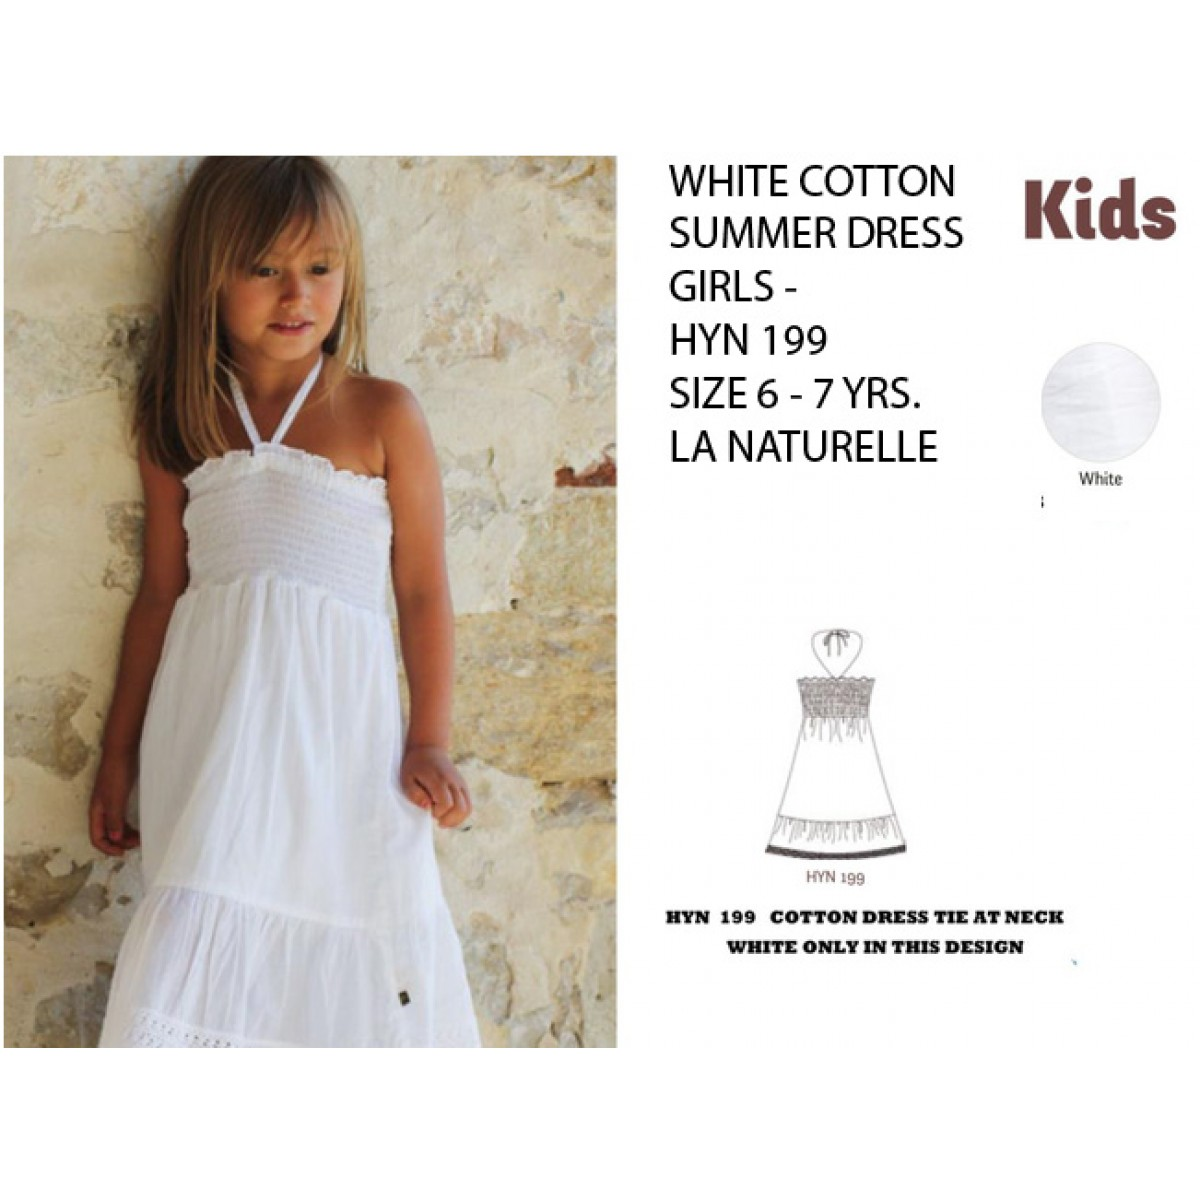 5ee730bb294d5 Buy young girls 6 - 7 clothing online by La Naturelle France. Love ...